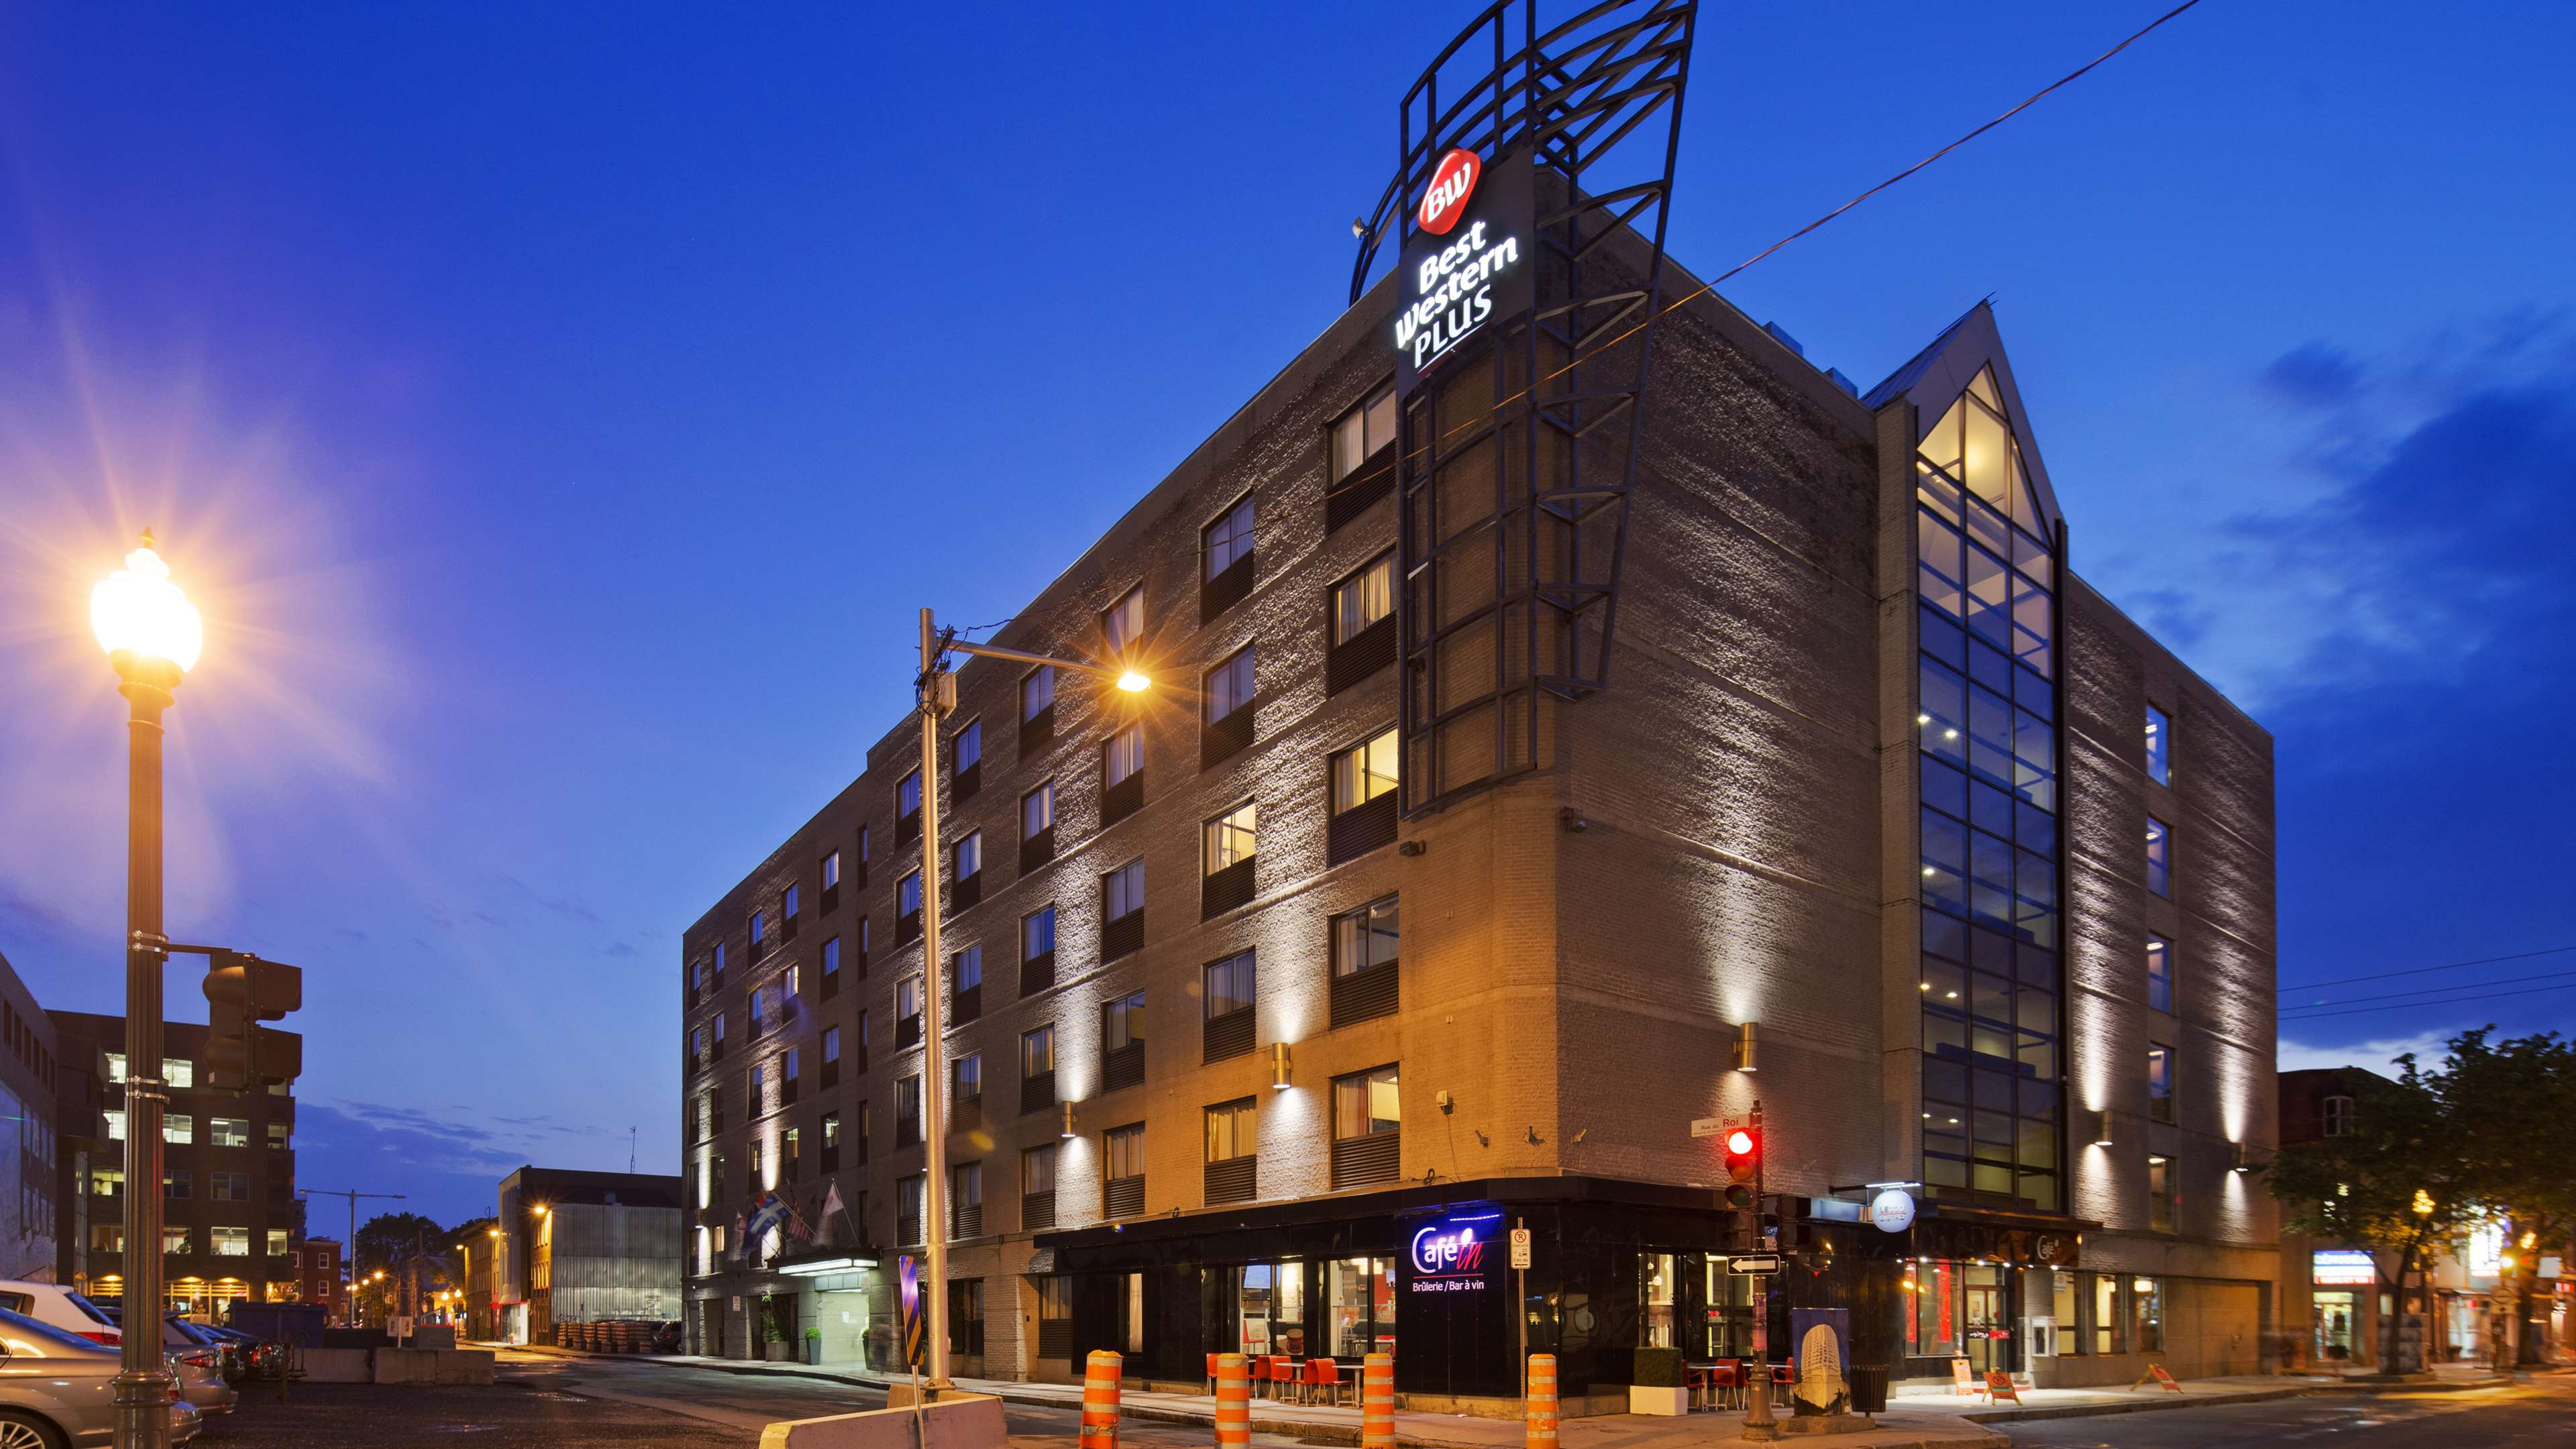 Best western plus city centre centre ville 330 de la for Design hotel quebec city